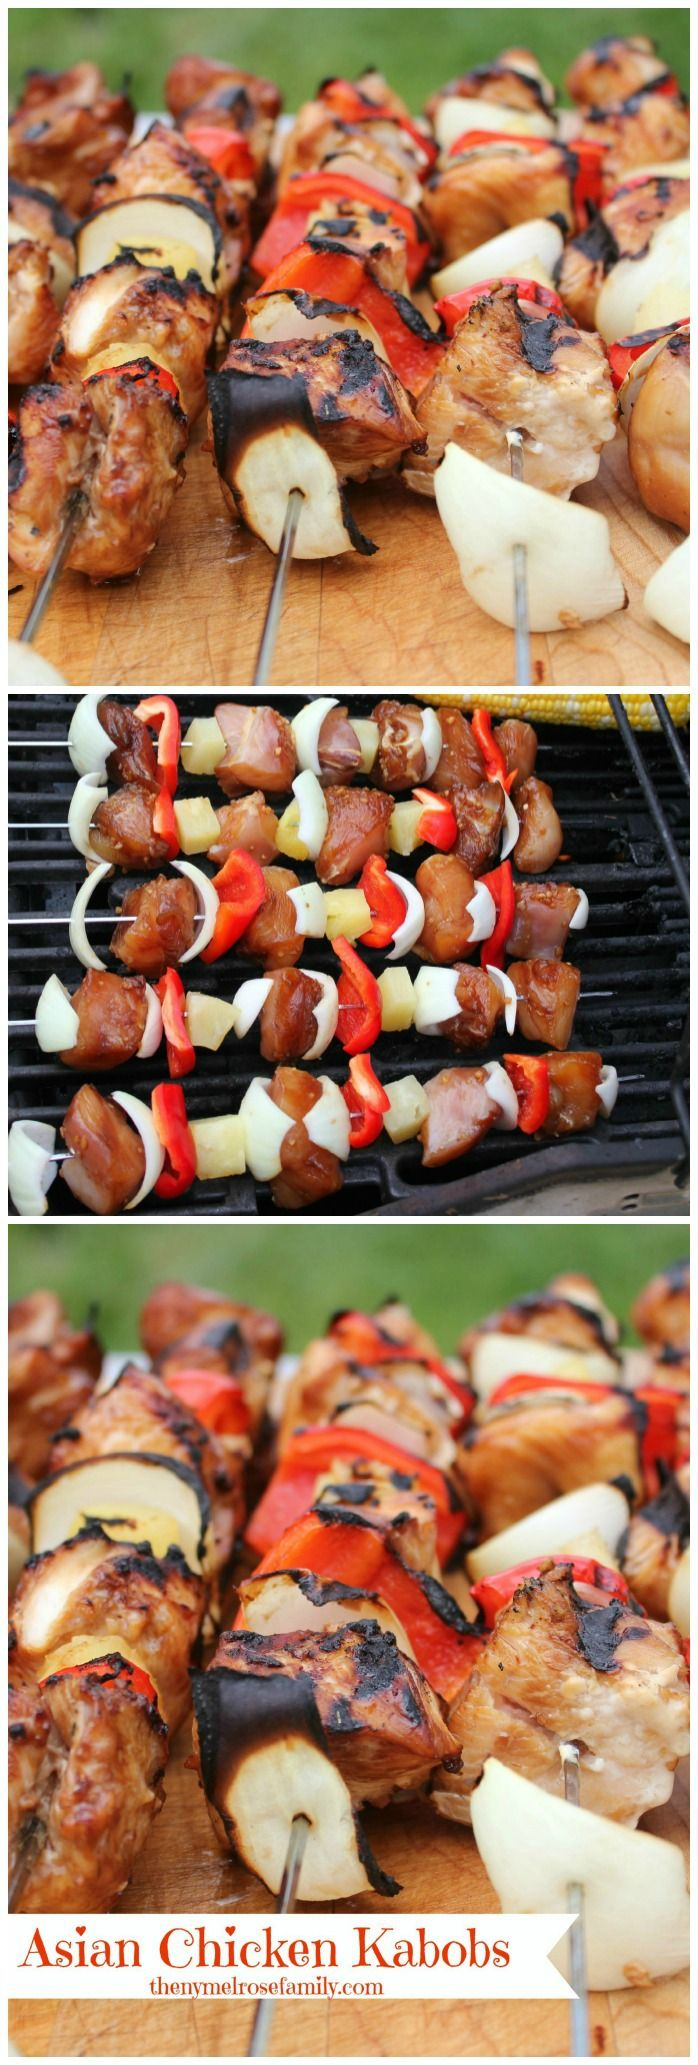 How long do i grill chicken kabobs - Asian Chicken Kabobs Grill Recipe